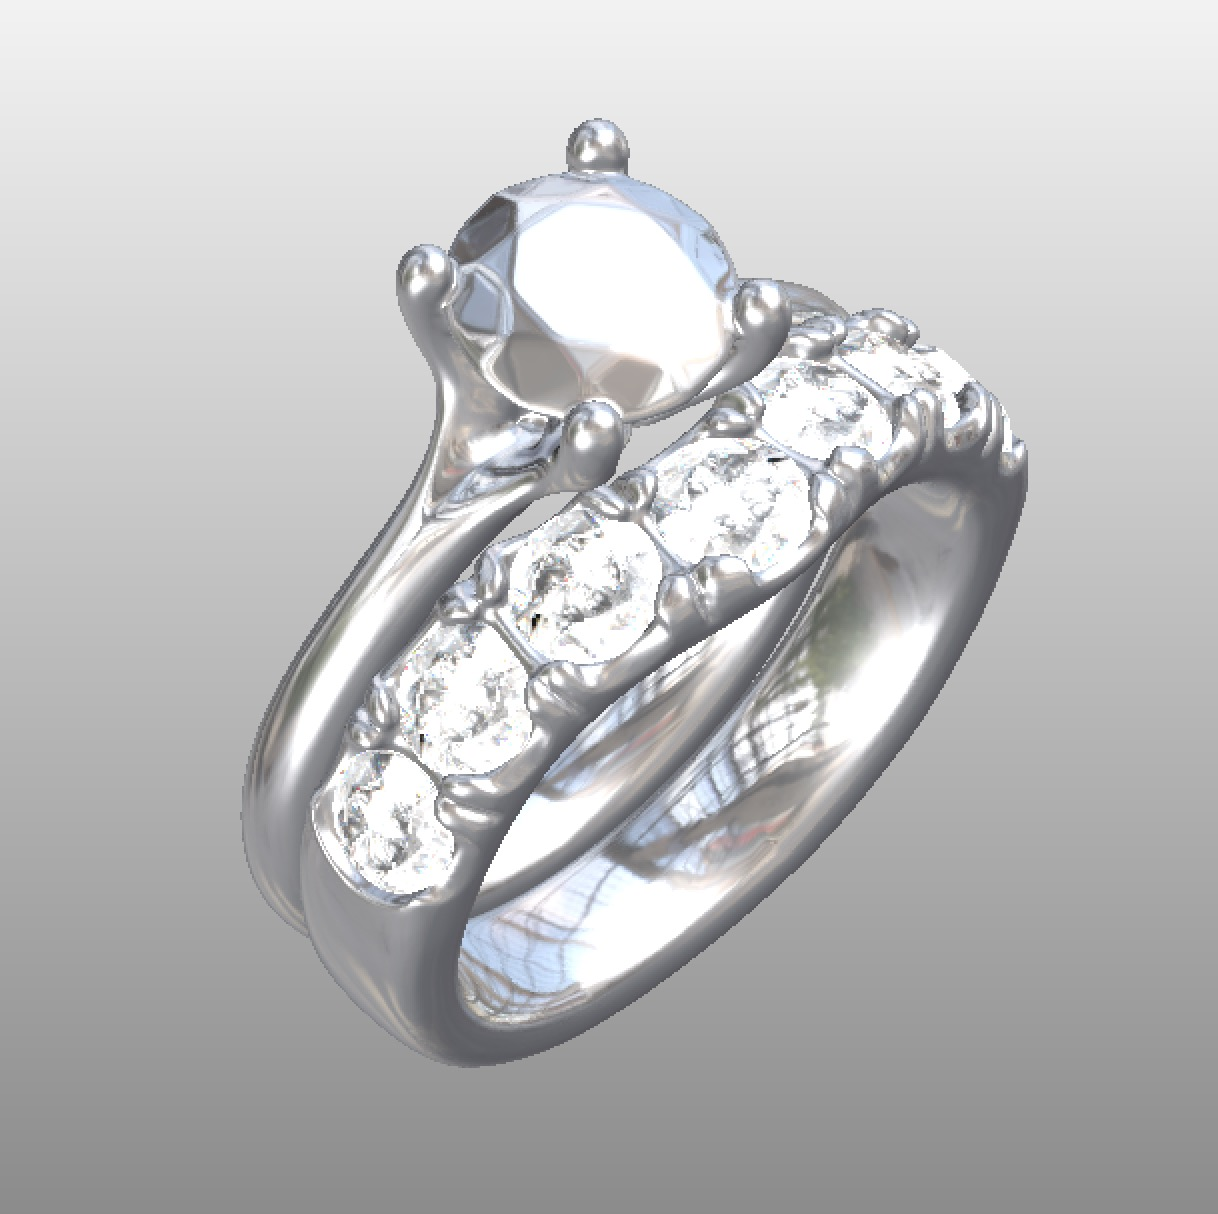 Copy of 3d scanned engagement ring with cad design diamond wedding ring to be made with customers own diamonds.